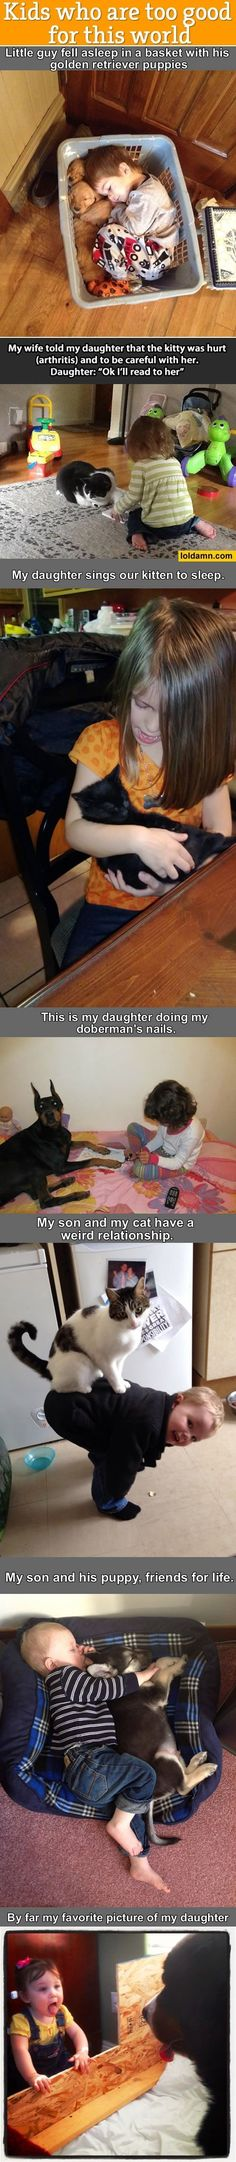 Adorable! This is good parenting! Parents should teach their kids to love and respect animals! :)